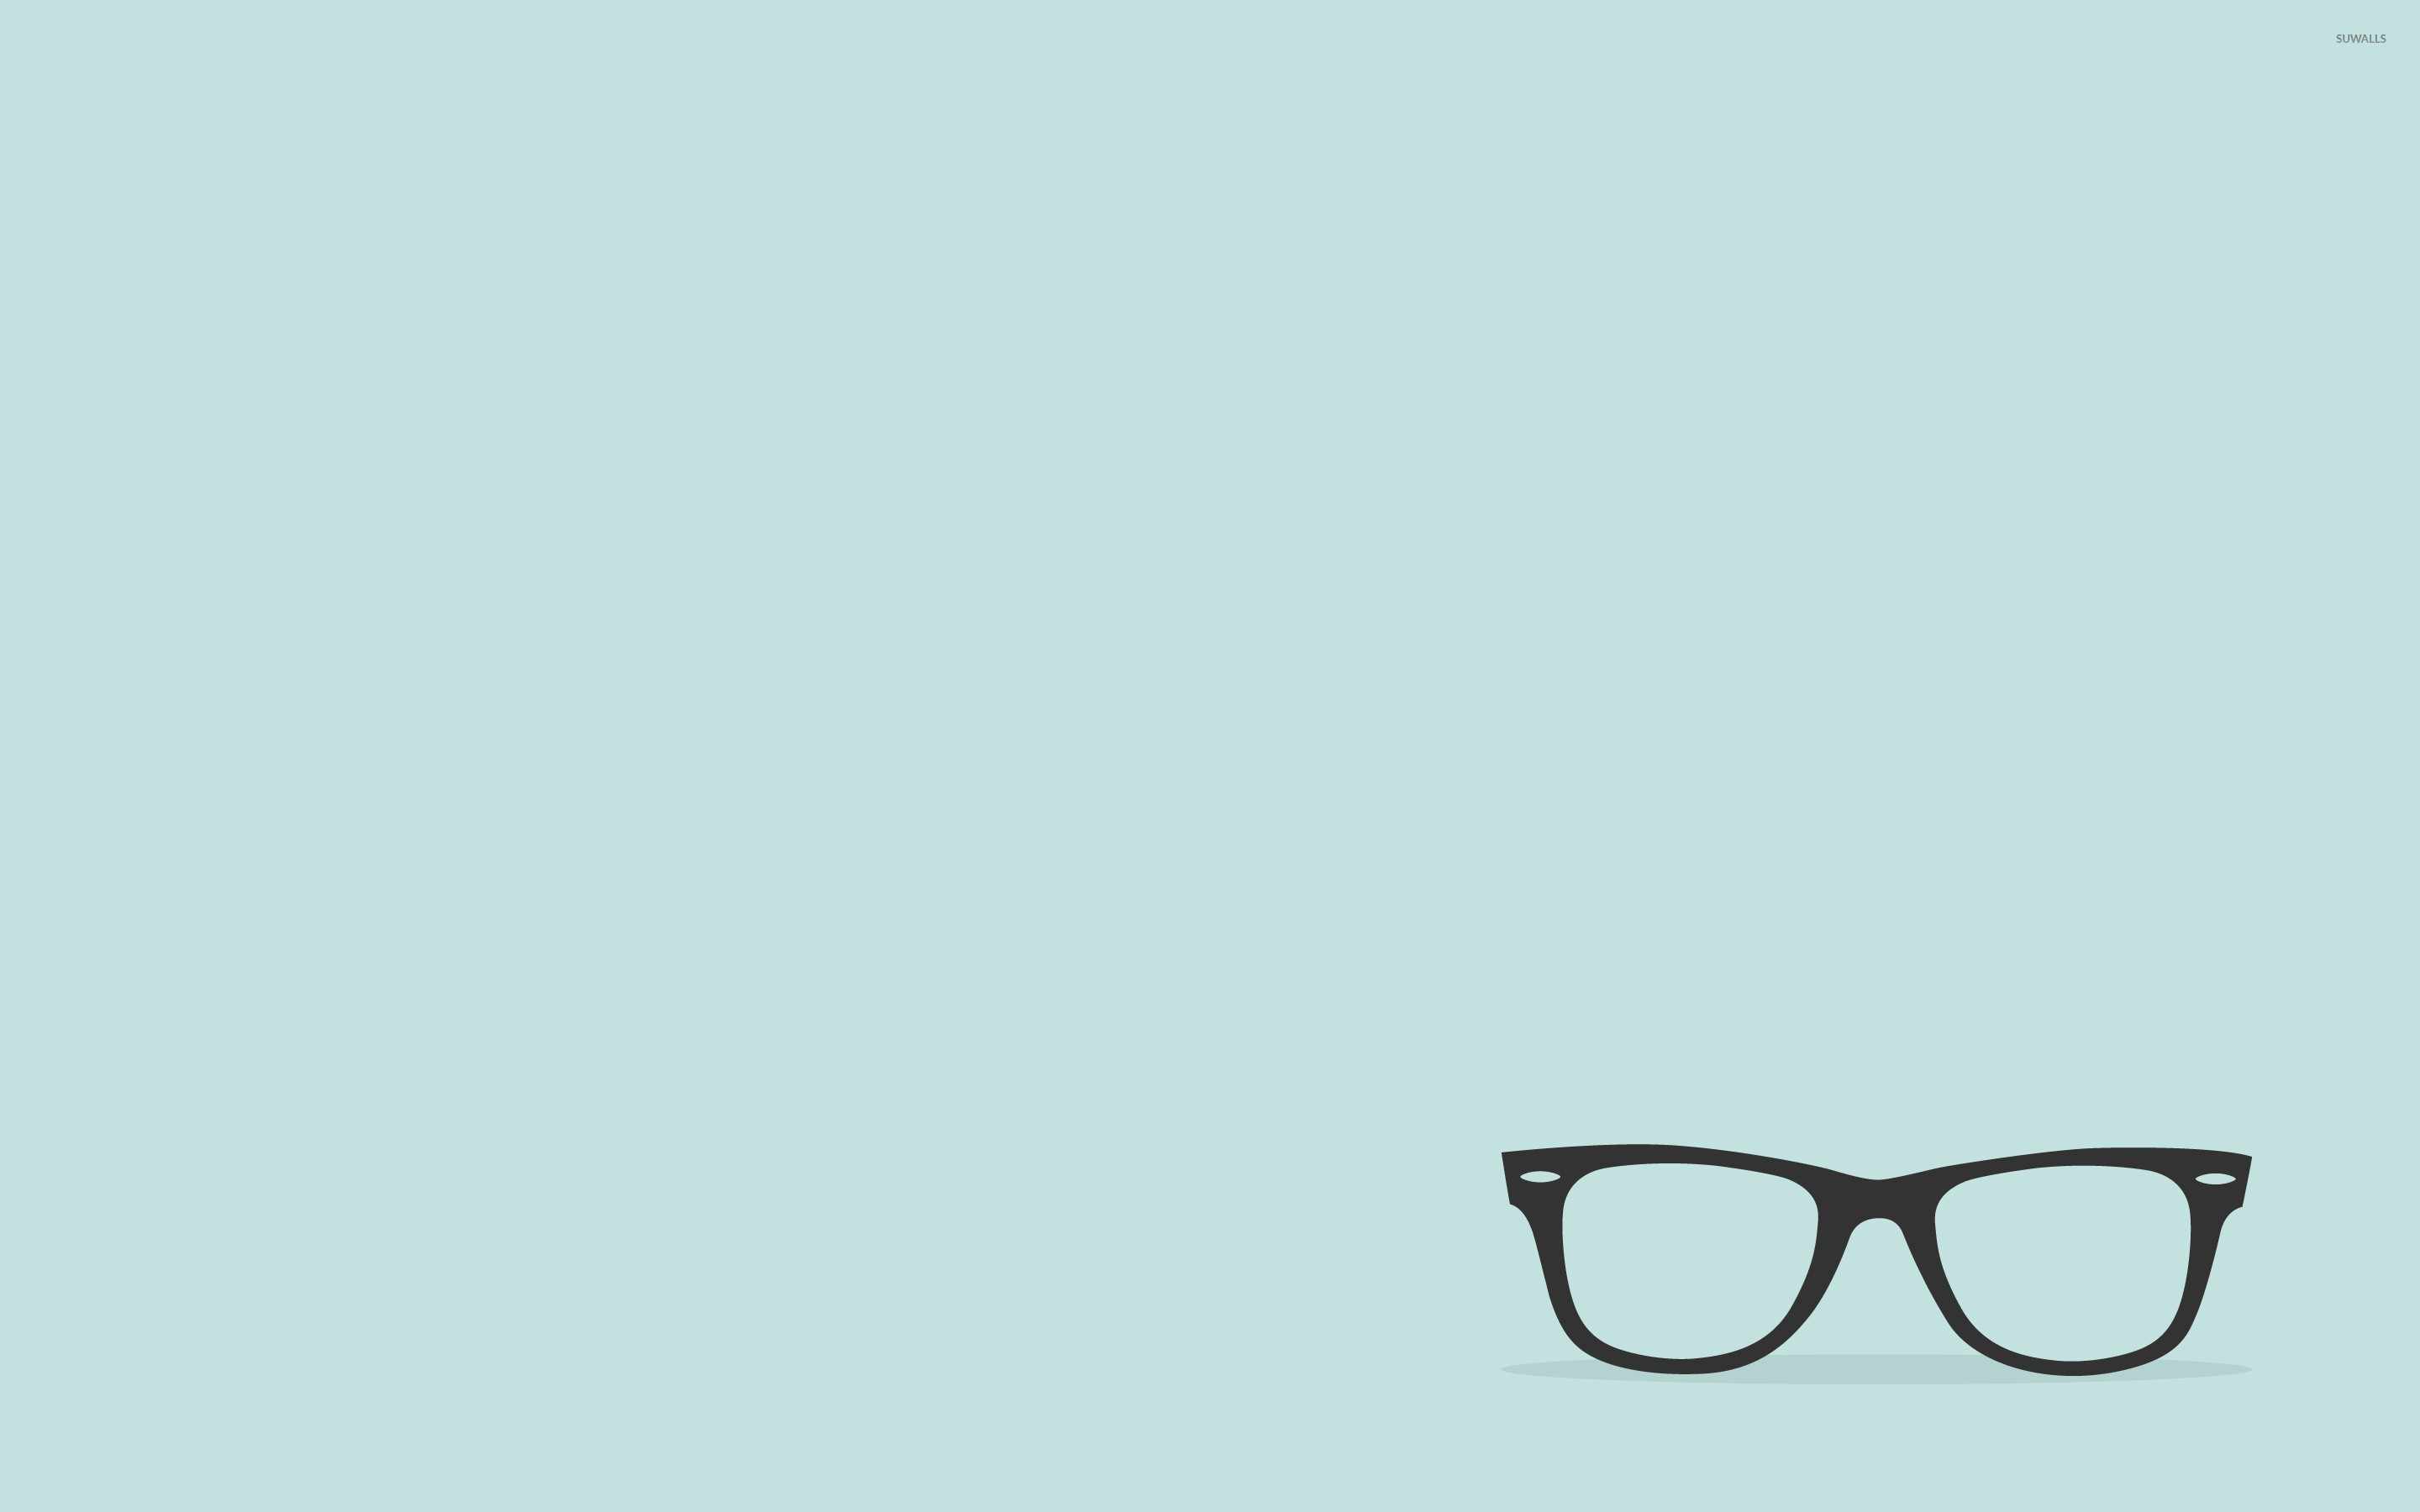 Cute Cat Wallpaper For Iphone Eyeglasses With Black Frames Wallpaper Minimalistic